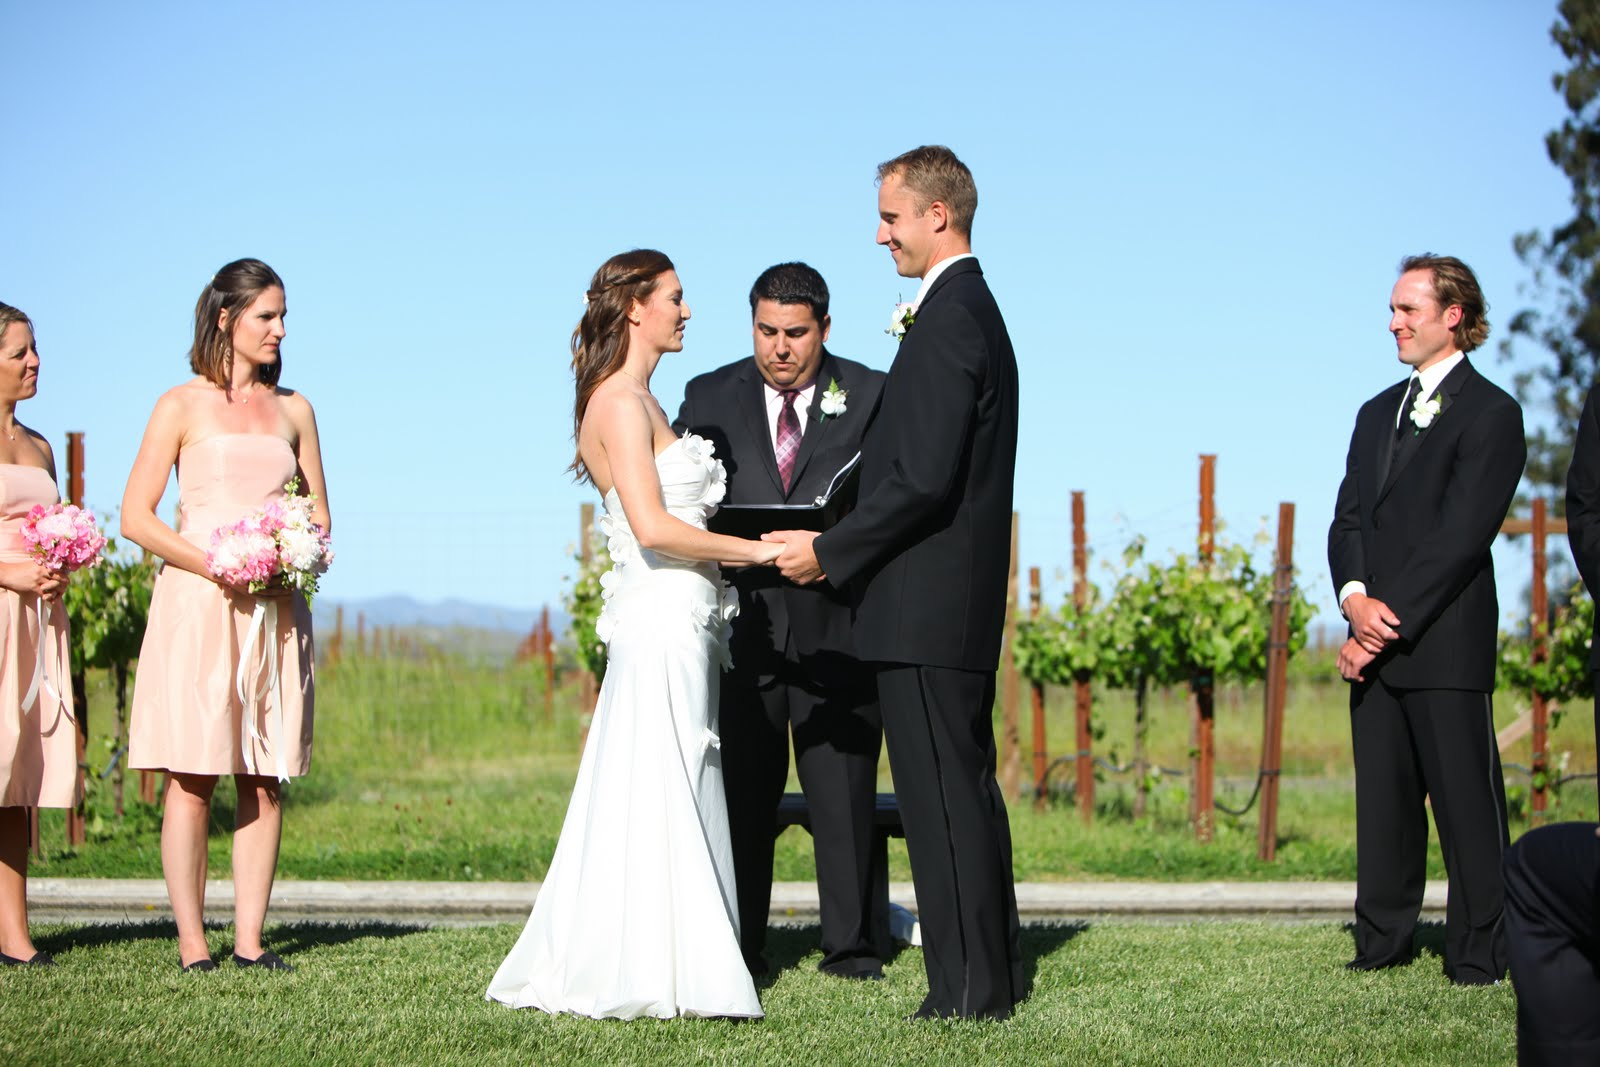 Officiating A Wedding Ceremony In California